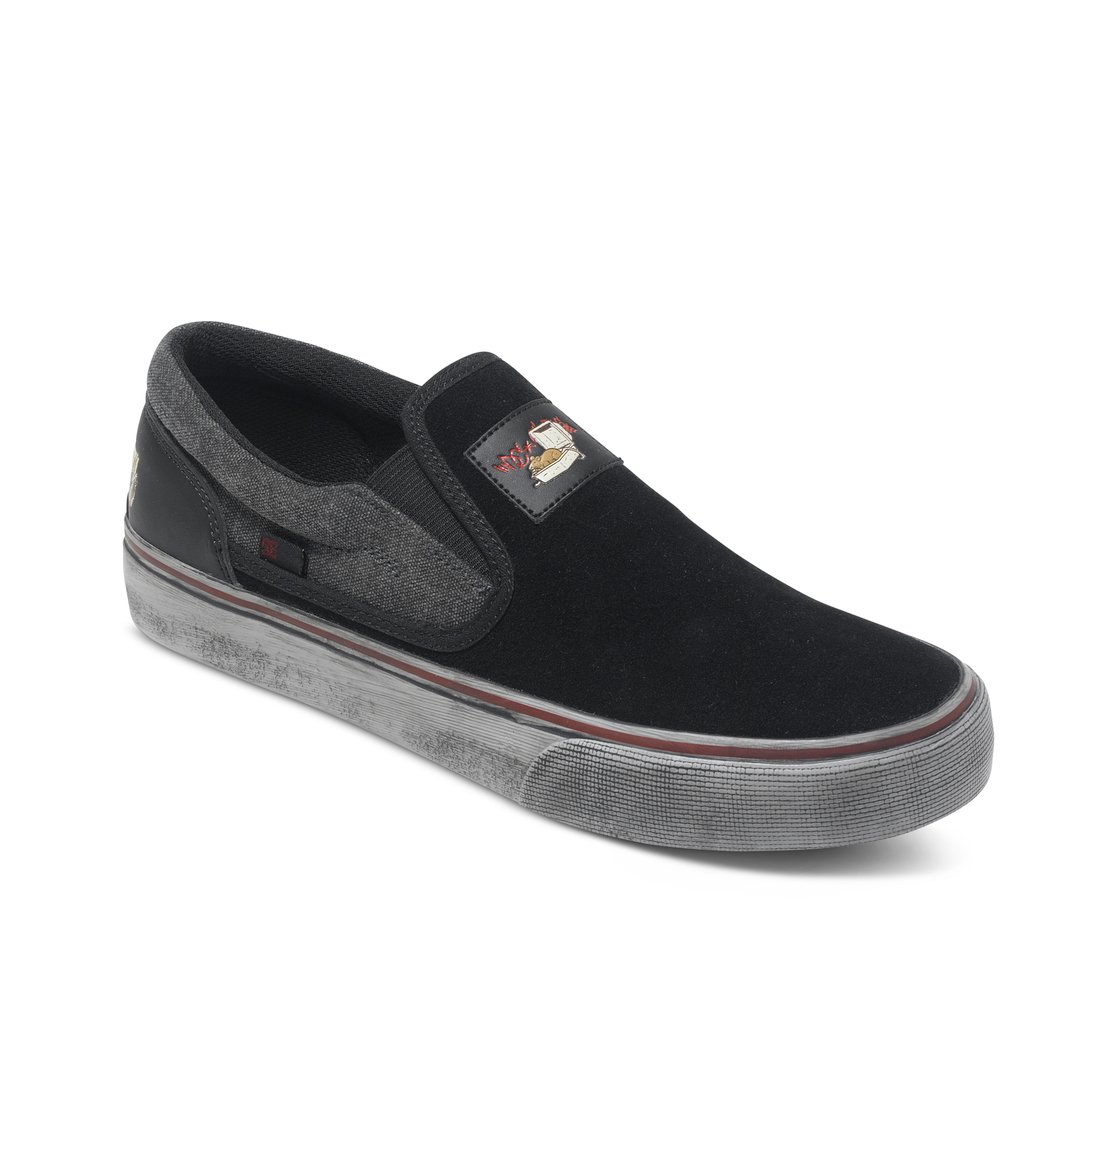 3ddf871df 1 Men s Trase S Cliver Slip-On Shoes ADYS300174 DC Shoes